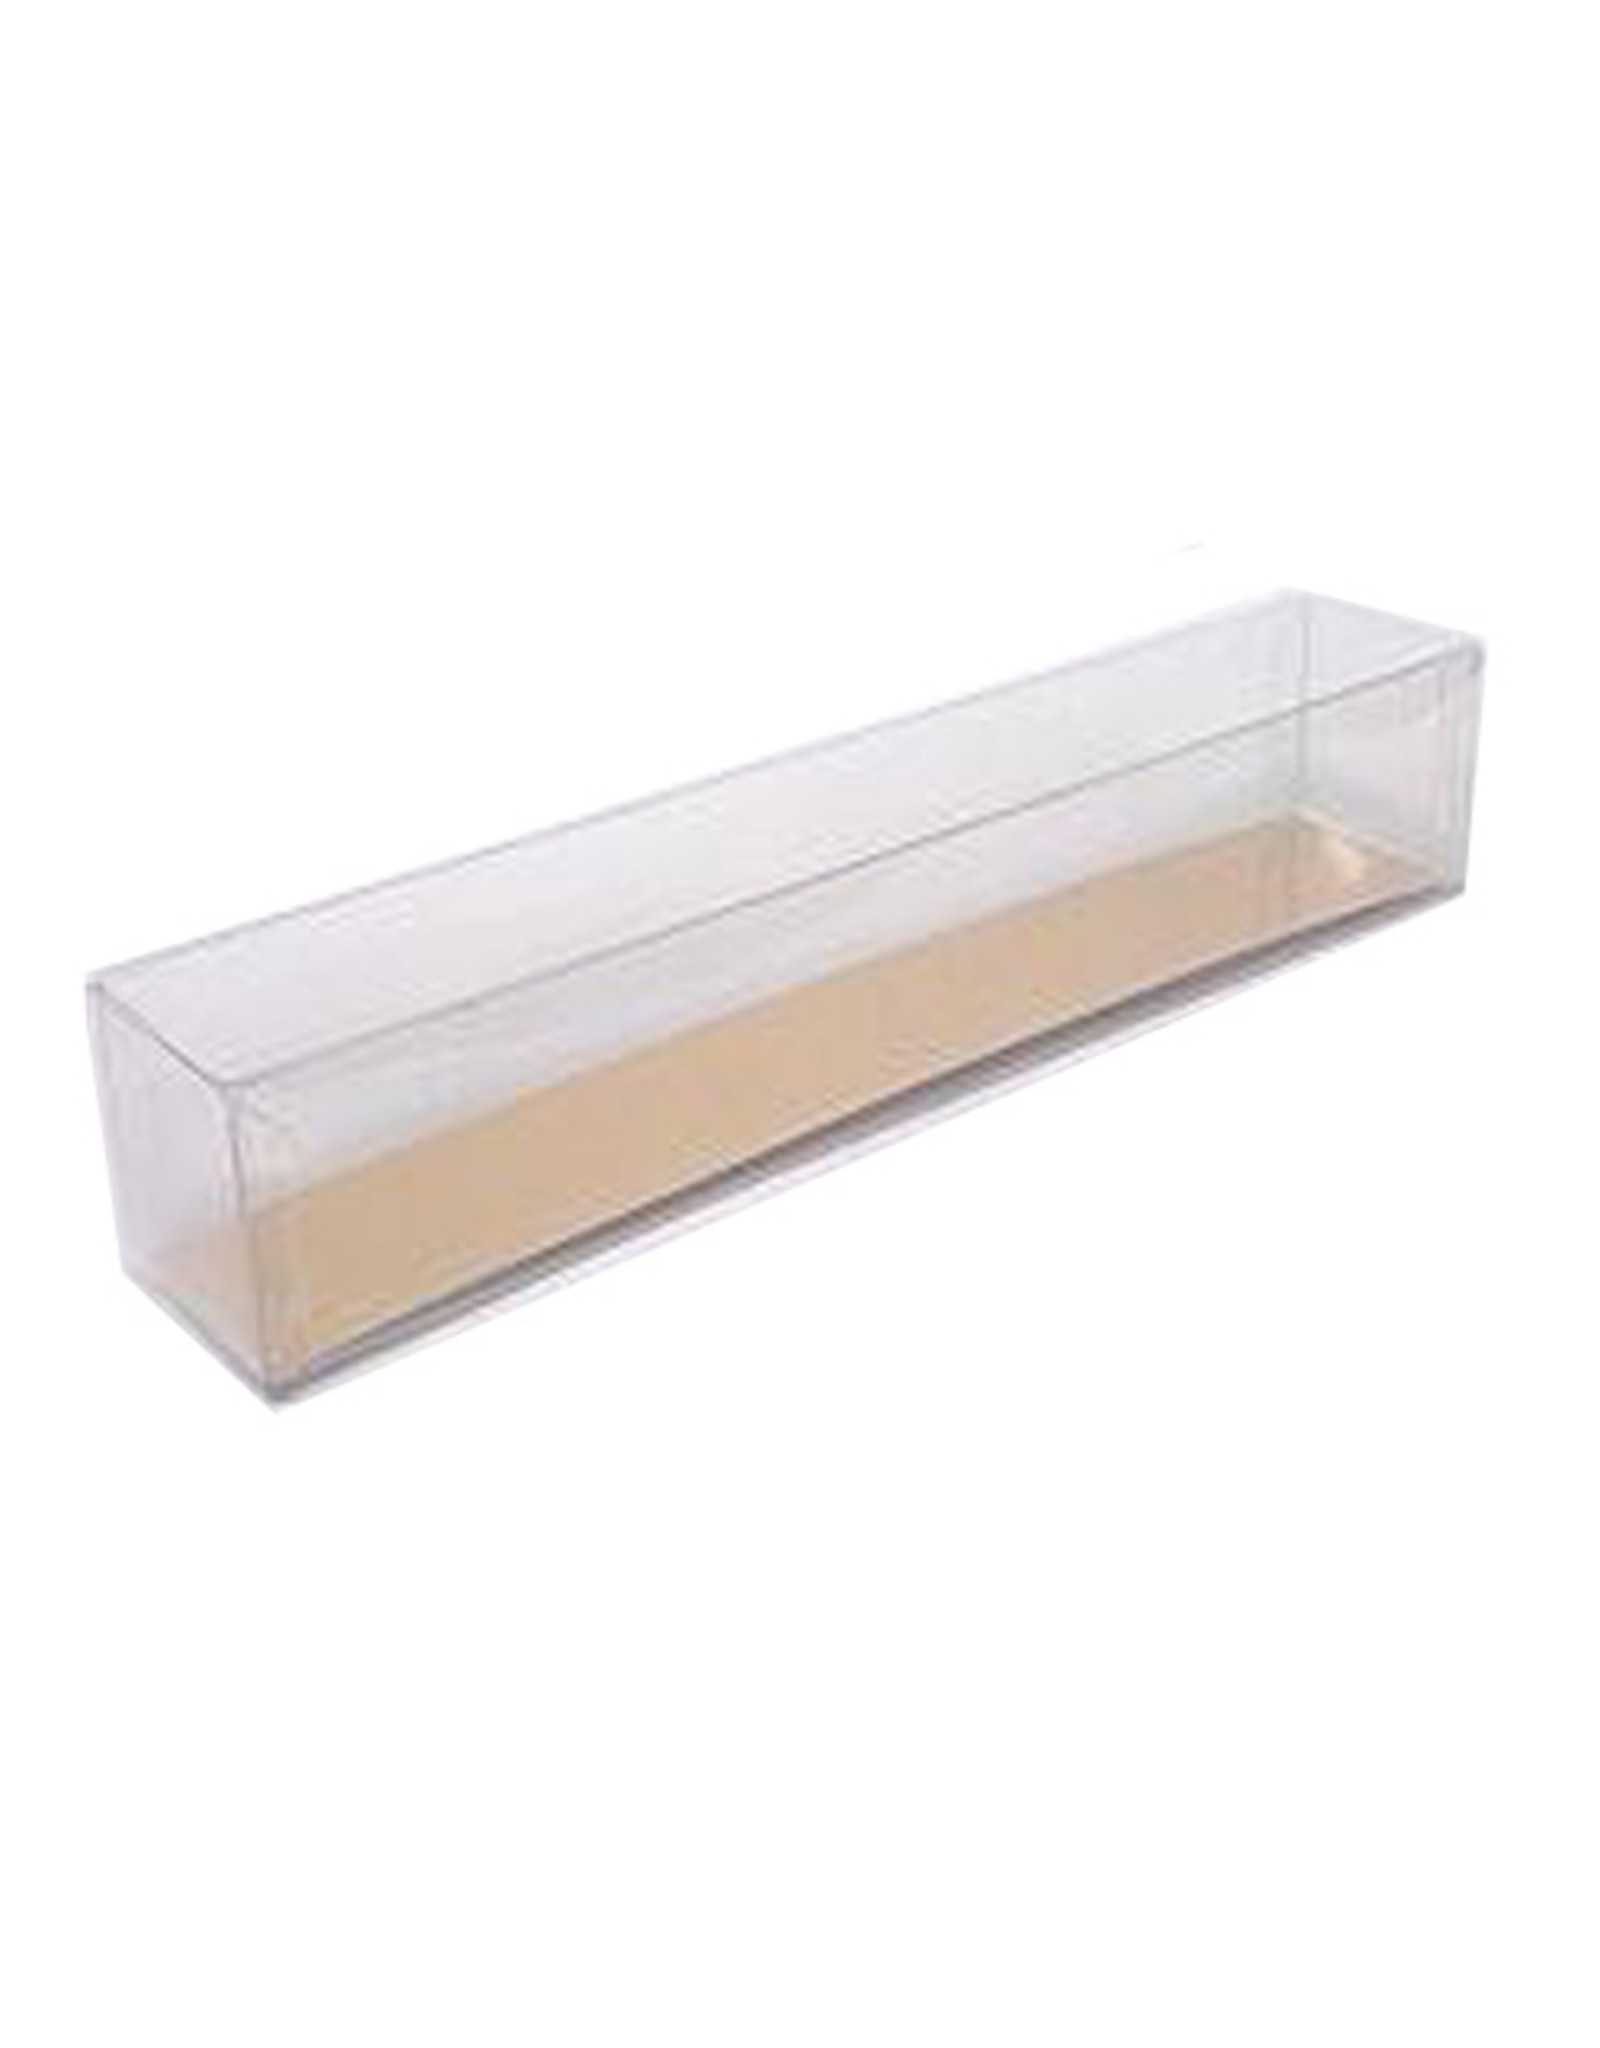 Transparent bar in multiple sizes (per 100 pieces)